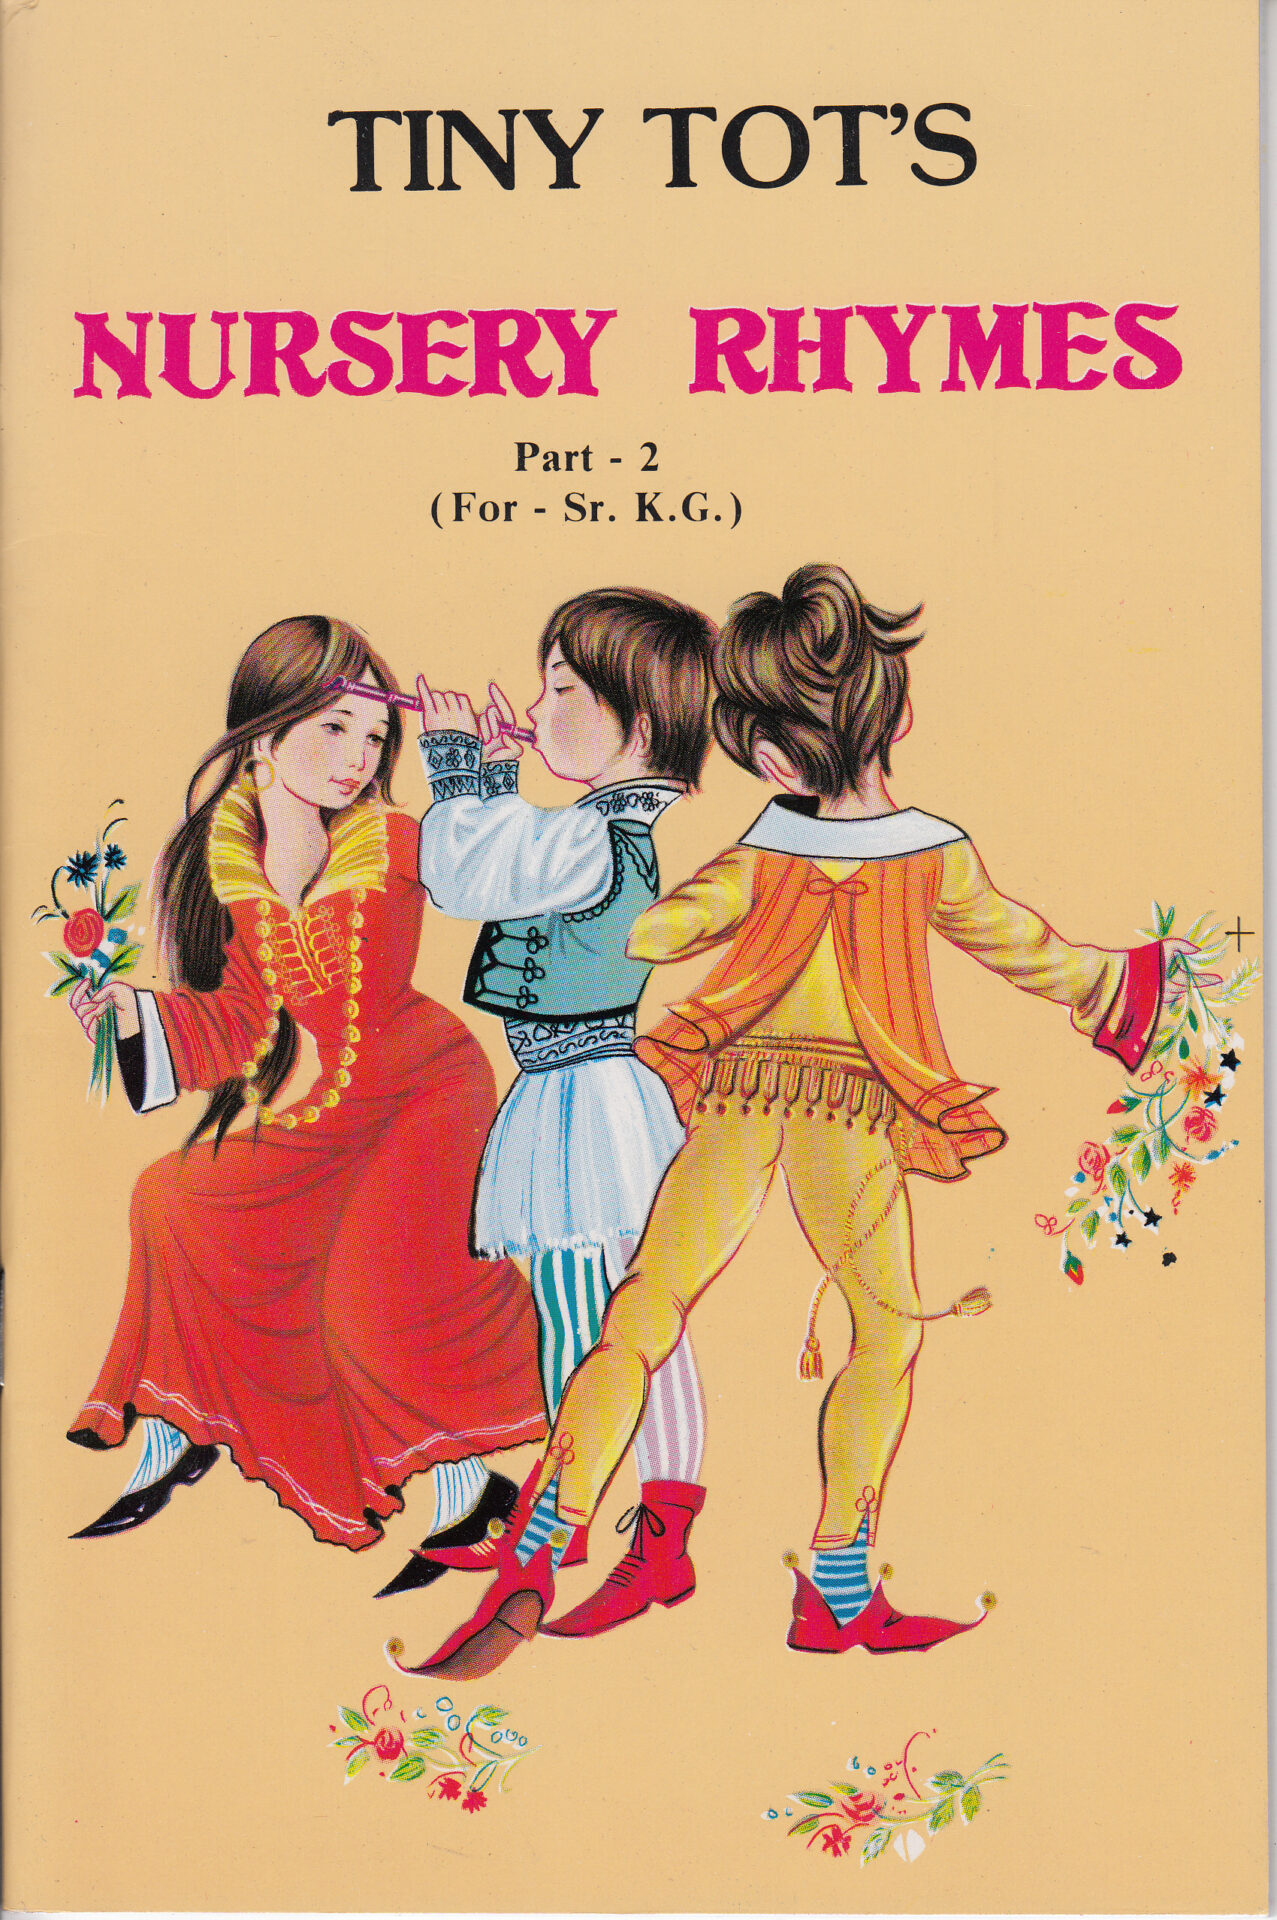 Tiny Tots Nursery Rhymes Part 2 For Sr. K.G.